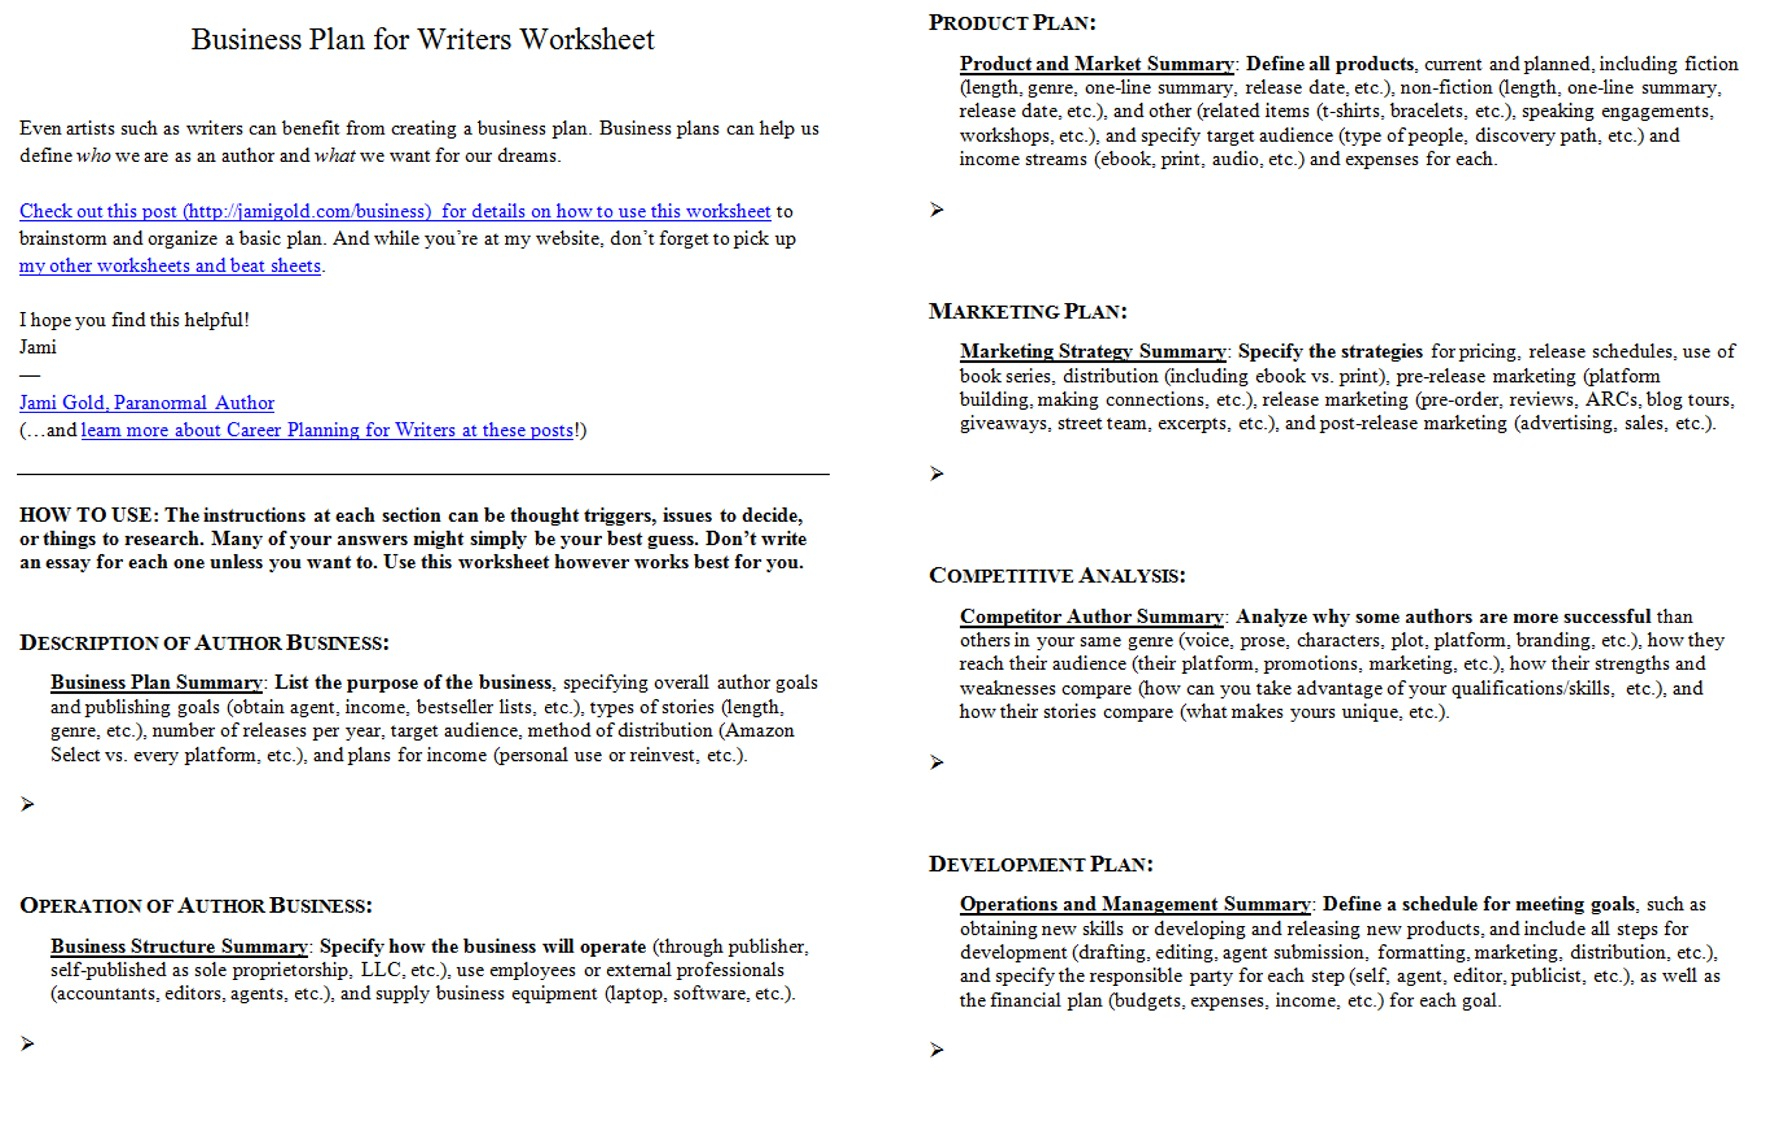 Proatmealus  Nice Worksheets For Writers  Jami Gold Paranormal Author With Gorgeous Screen Shot Of Both Pages Of The Business Plan For Writers Worksheet With Appealing Oi Oy Worksheet Also Grade  Language Arts Worksheets In Addition Whole Number Worksheets And Kitchen Remodel Worksheet As Well As How The Ear Works Worksheet Additionally Rd Grade Proofreading Worksheets From Jamigoldcom With Proatmealus  Gorgeous Worksheets For Writers  Jami Gold Paranormal Author With Appealing Screen Shot Of Both Pages Of The Business Plan For Writers Worksheet And Nice Oi Oy Worksheet Also Grade  Language Arts Worksheets In Addition Whole Number Worksheets From Jamigoldcom